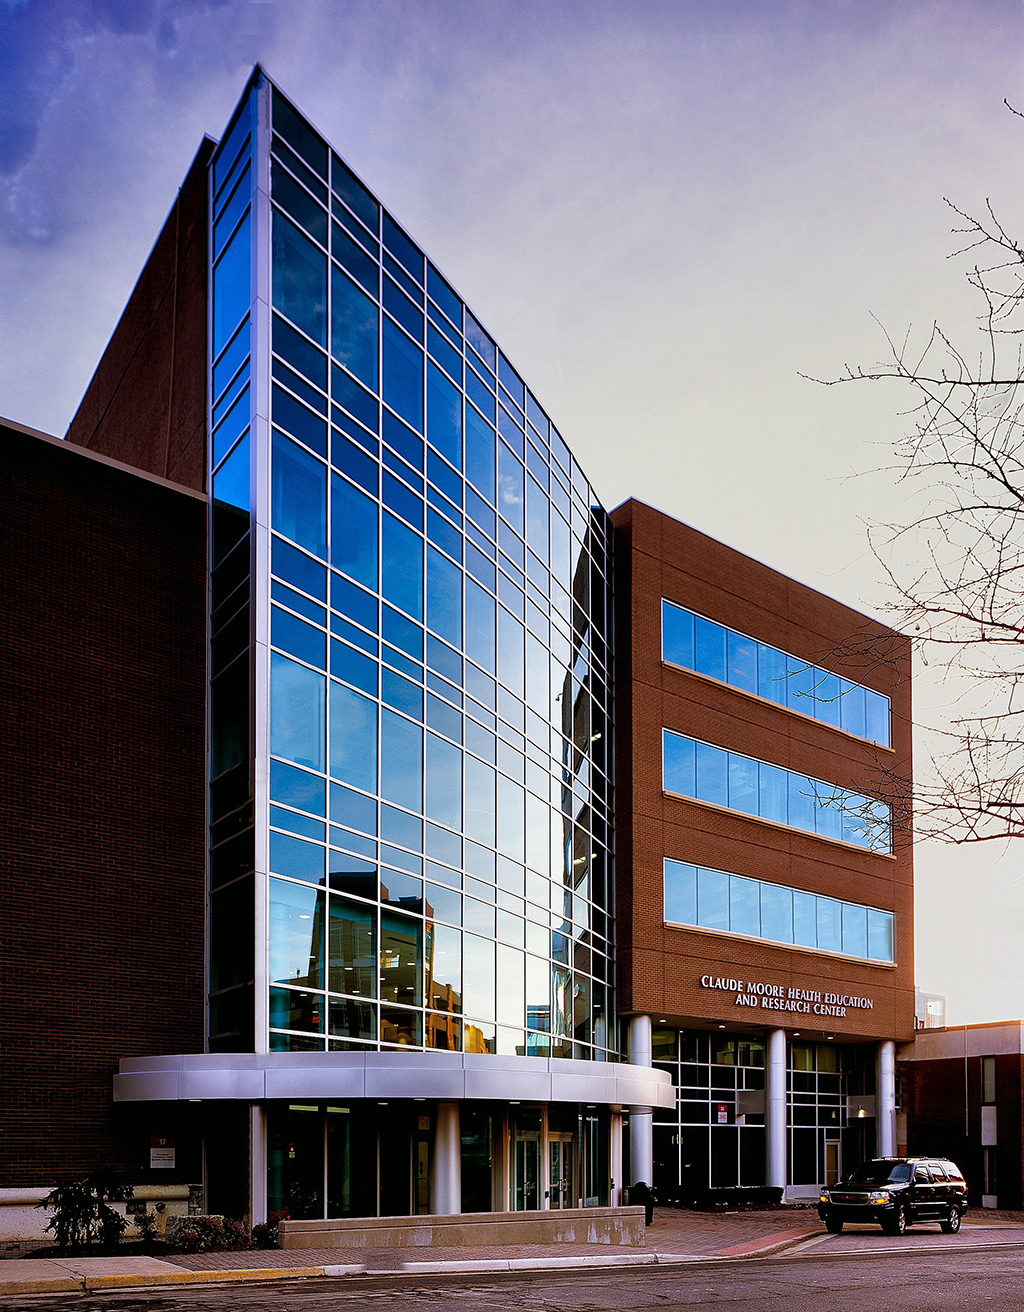 Claude Moore Health Education & Research Center